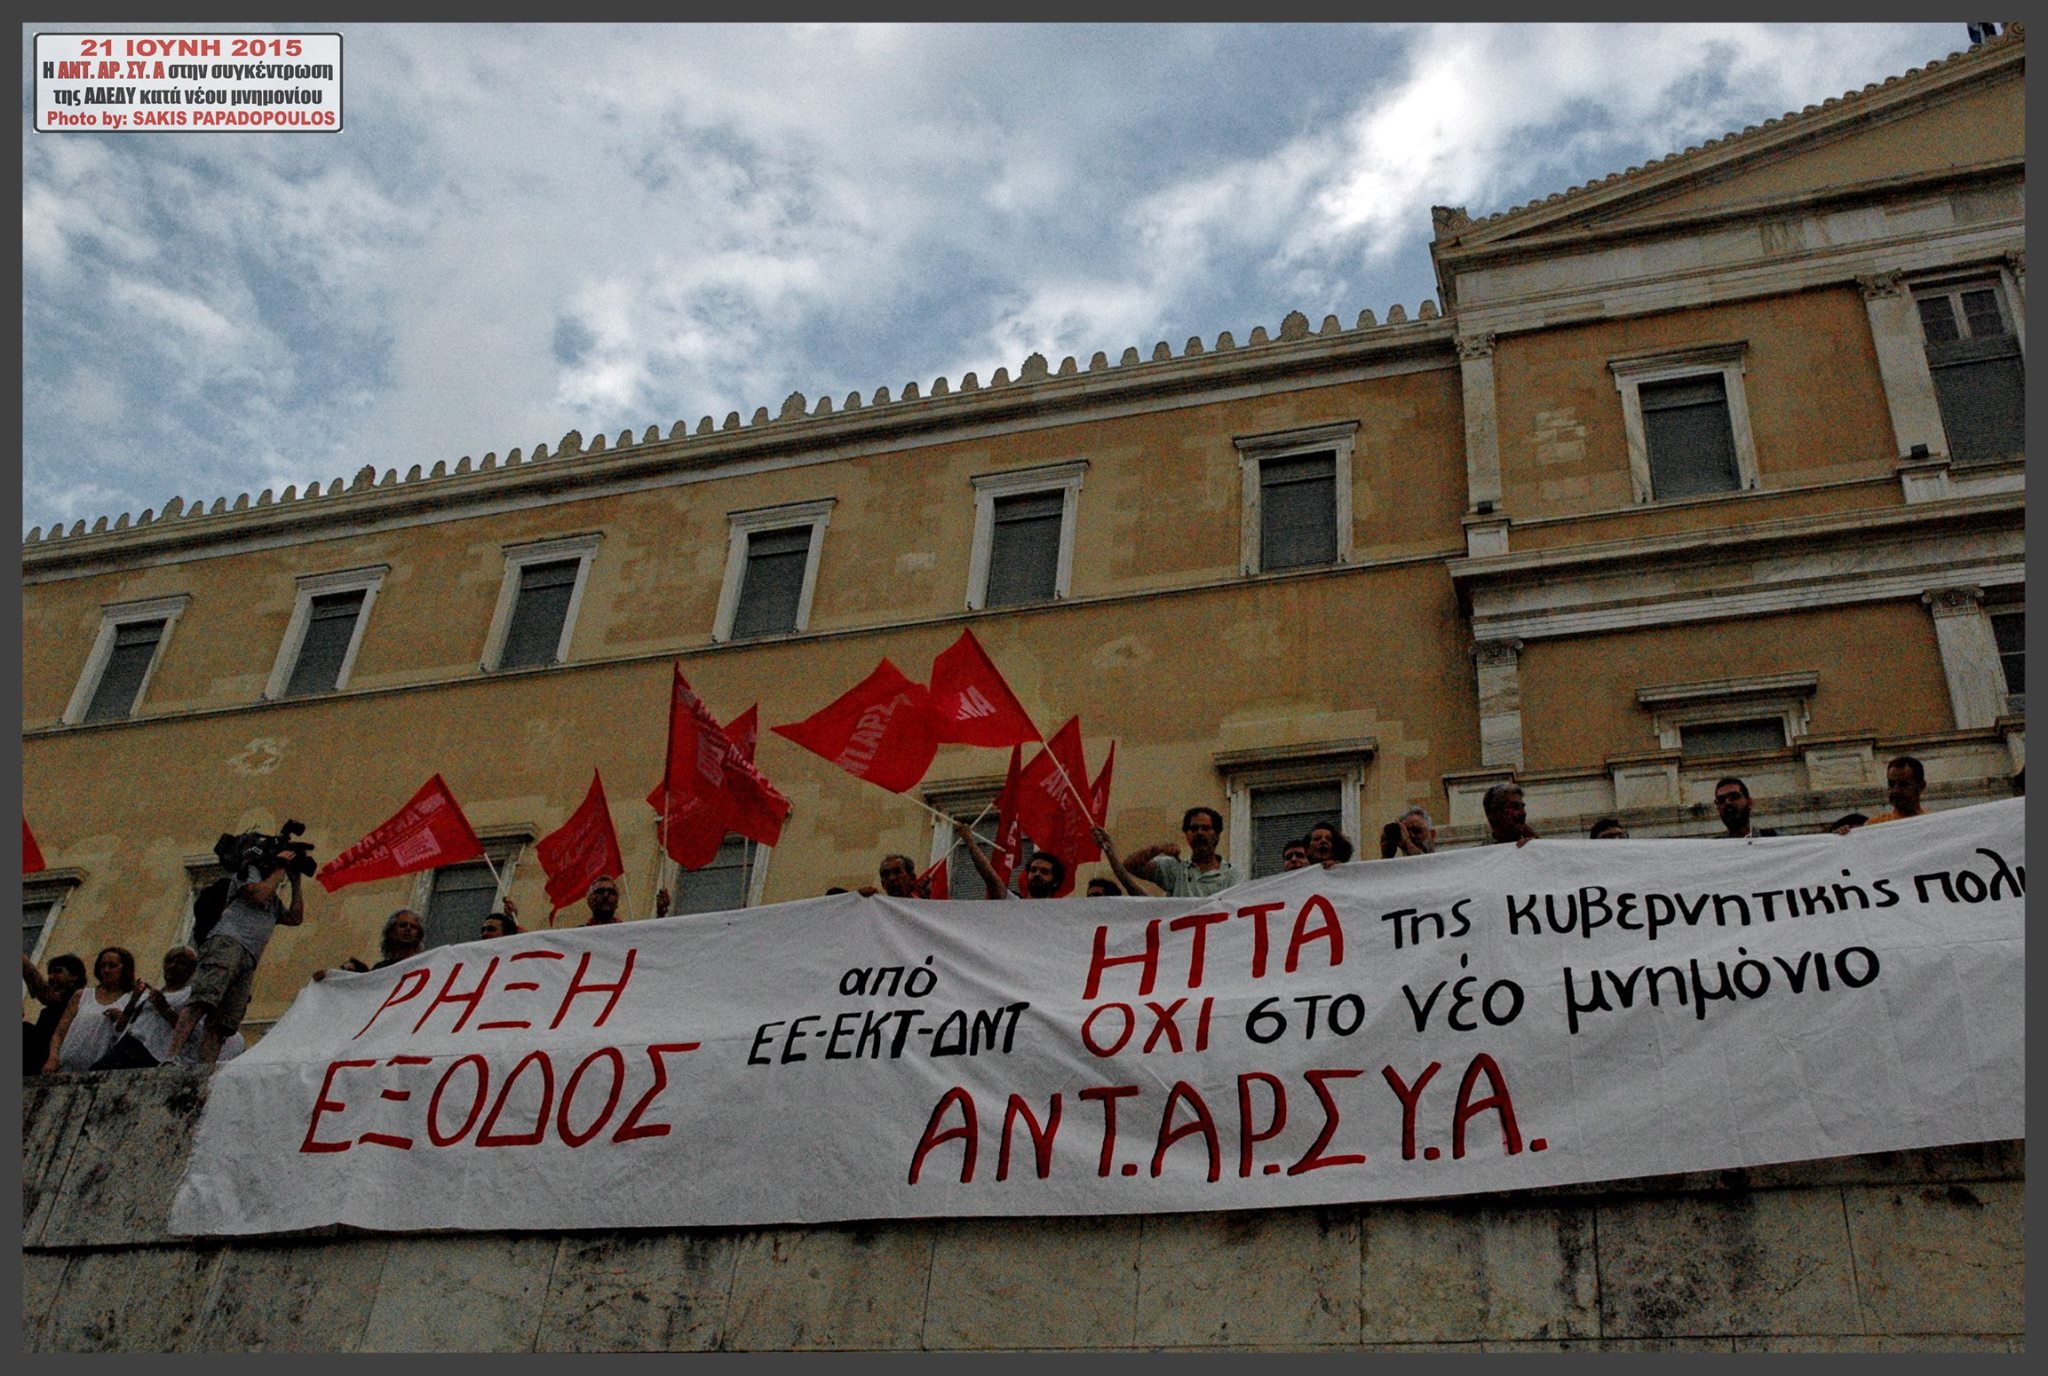 http://antarsya.gr/sites/default/files/field/image/syntagma2106j.jpg